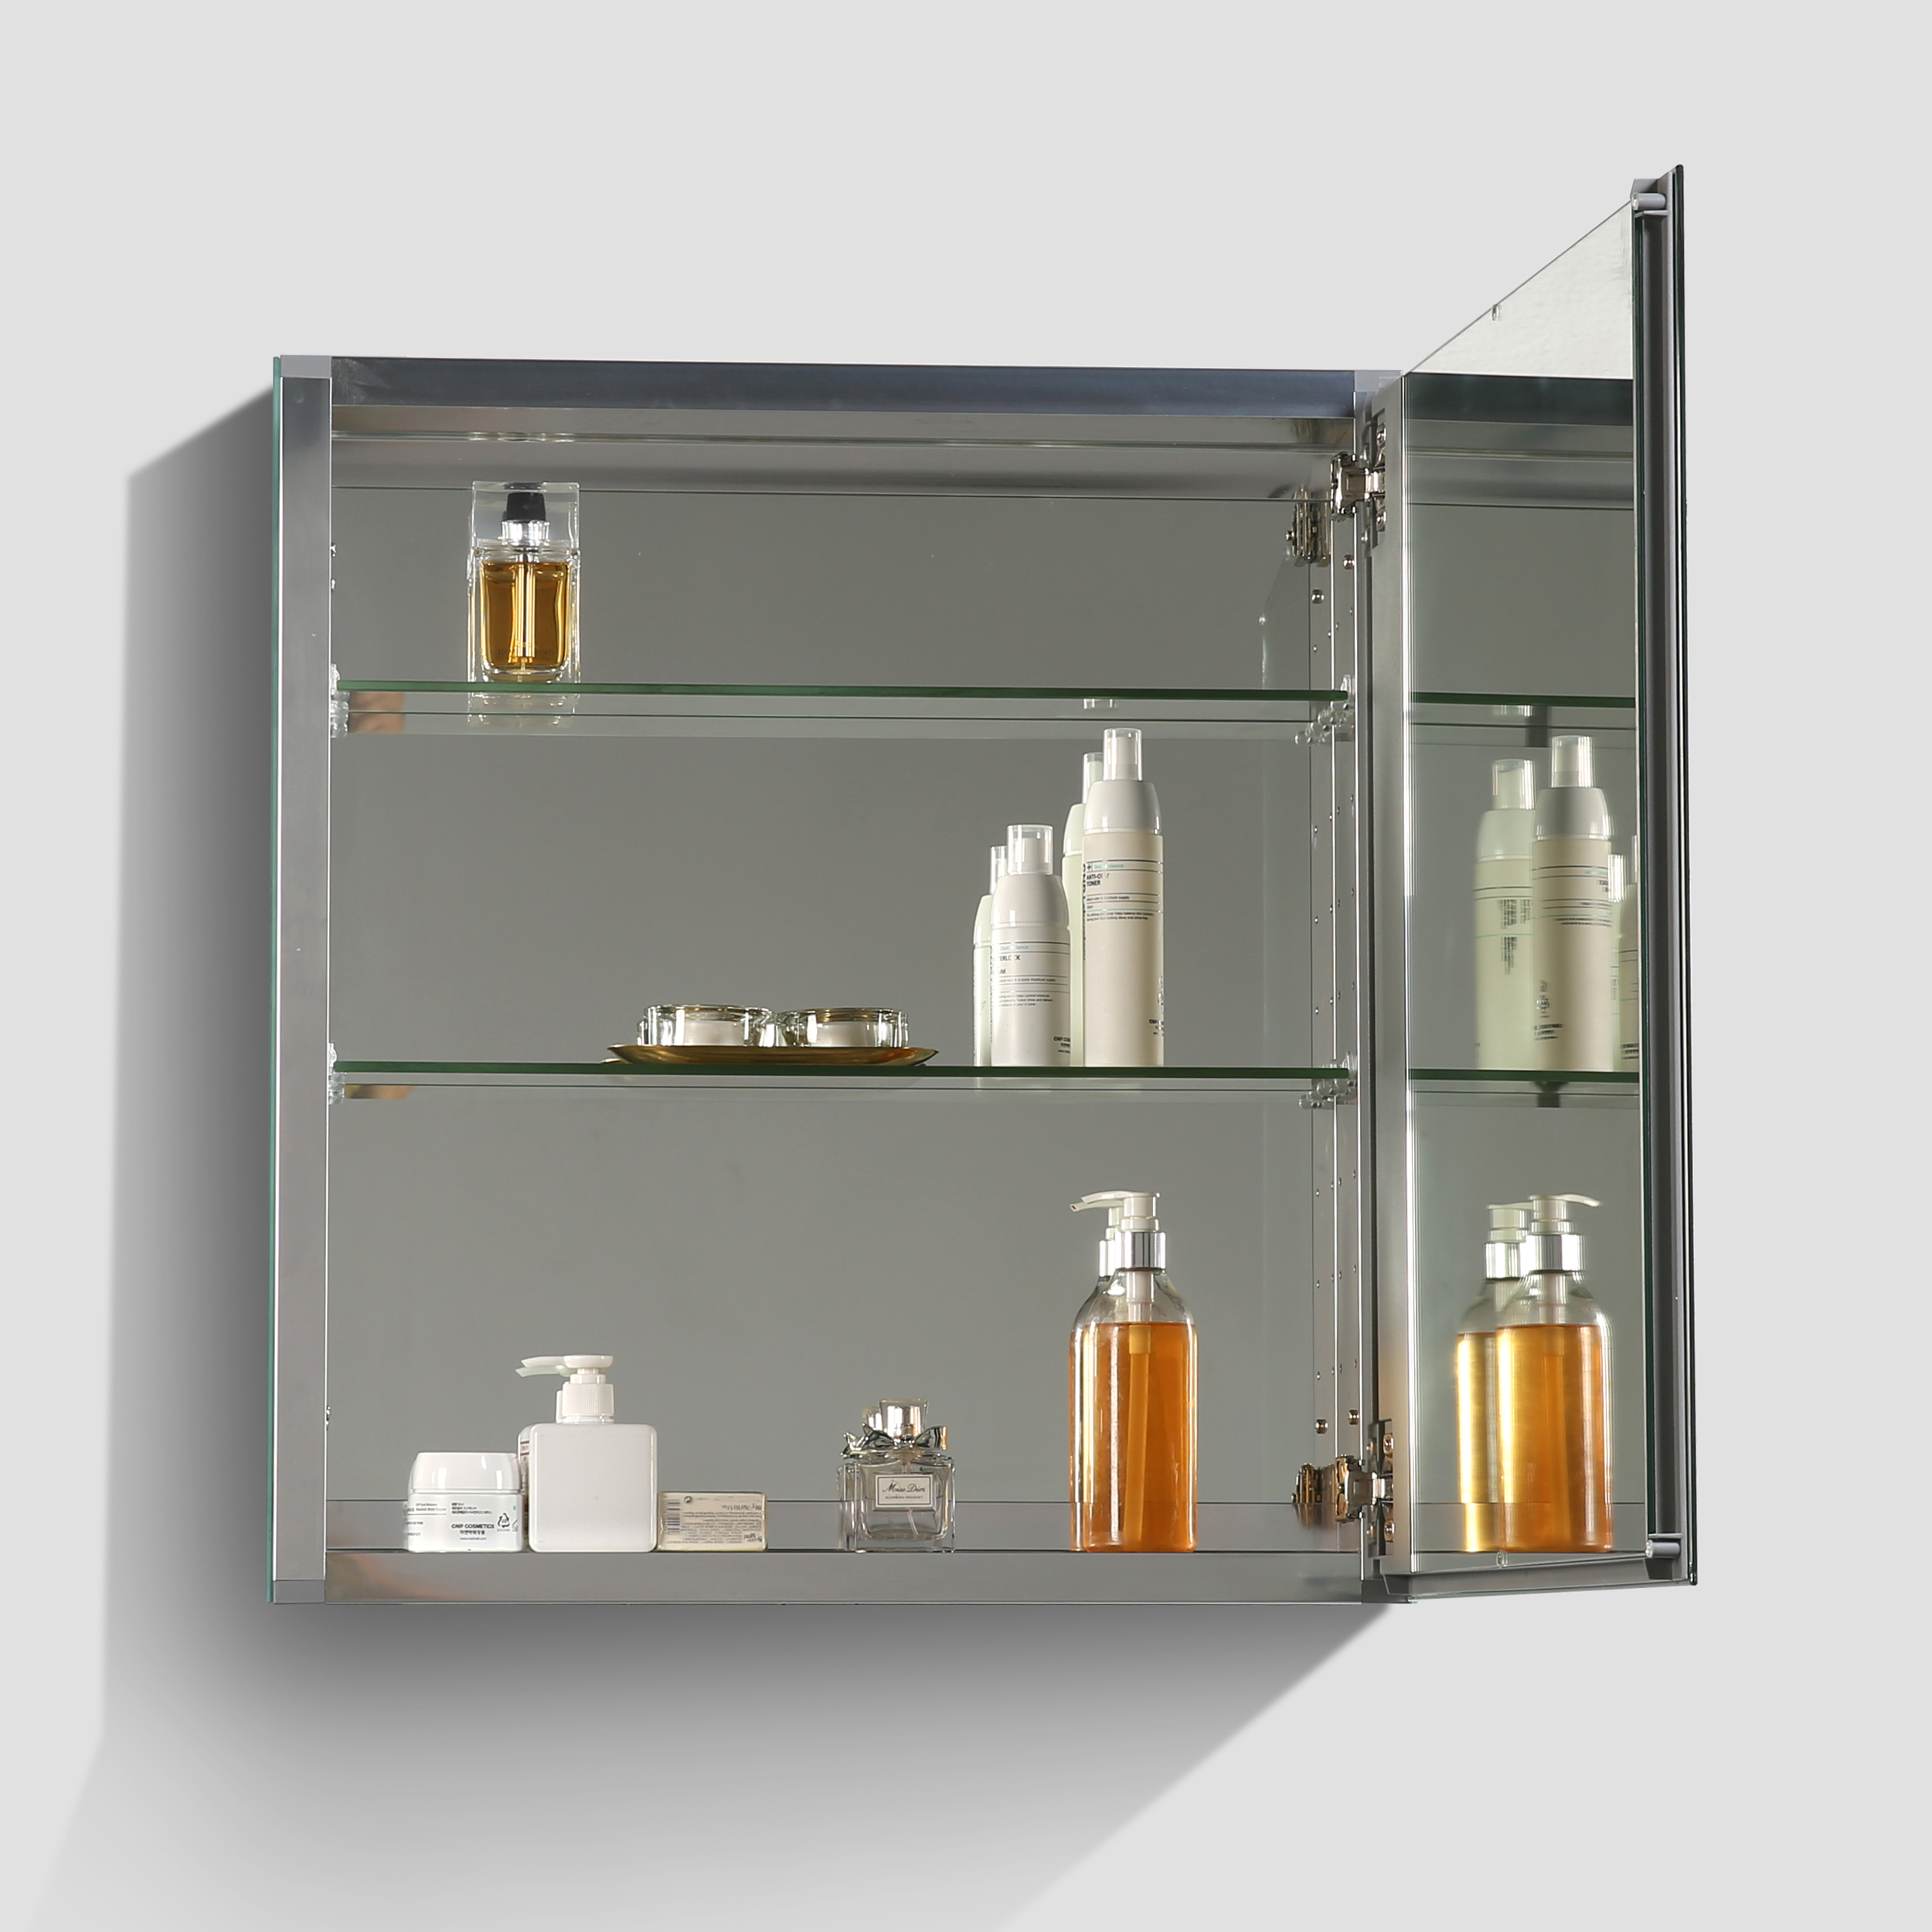 cabinets you can medicine with look lights cabinet mirror recessed bathroom